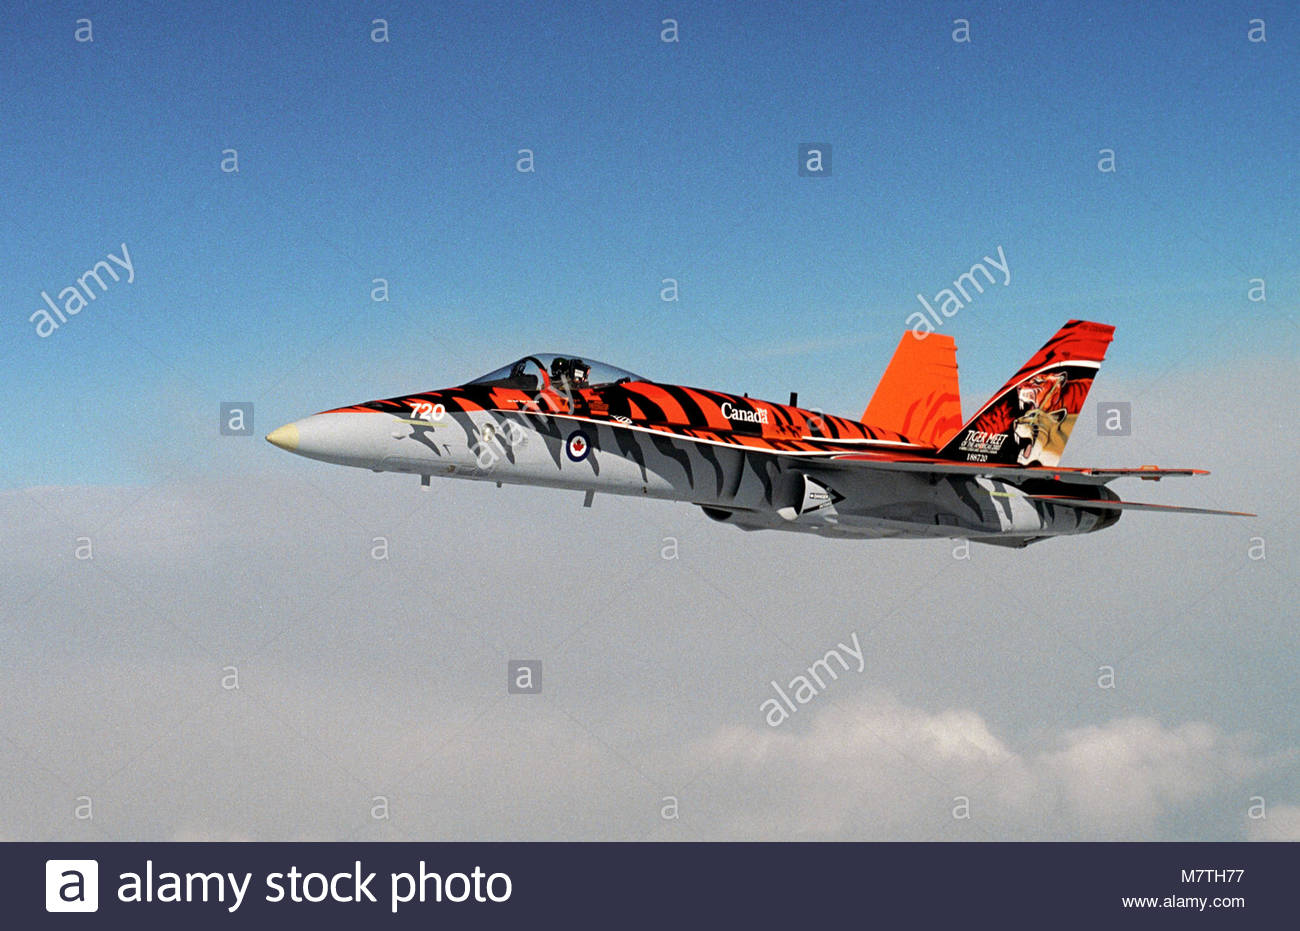 CF 188 Demo AC. A CF-188 Hornet fighter jet piloted by Capt. Travis Brassington of 410 Cougar Squadron flies over - Stock Image